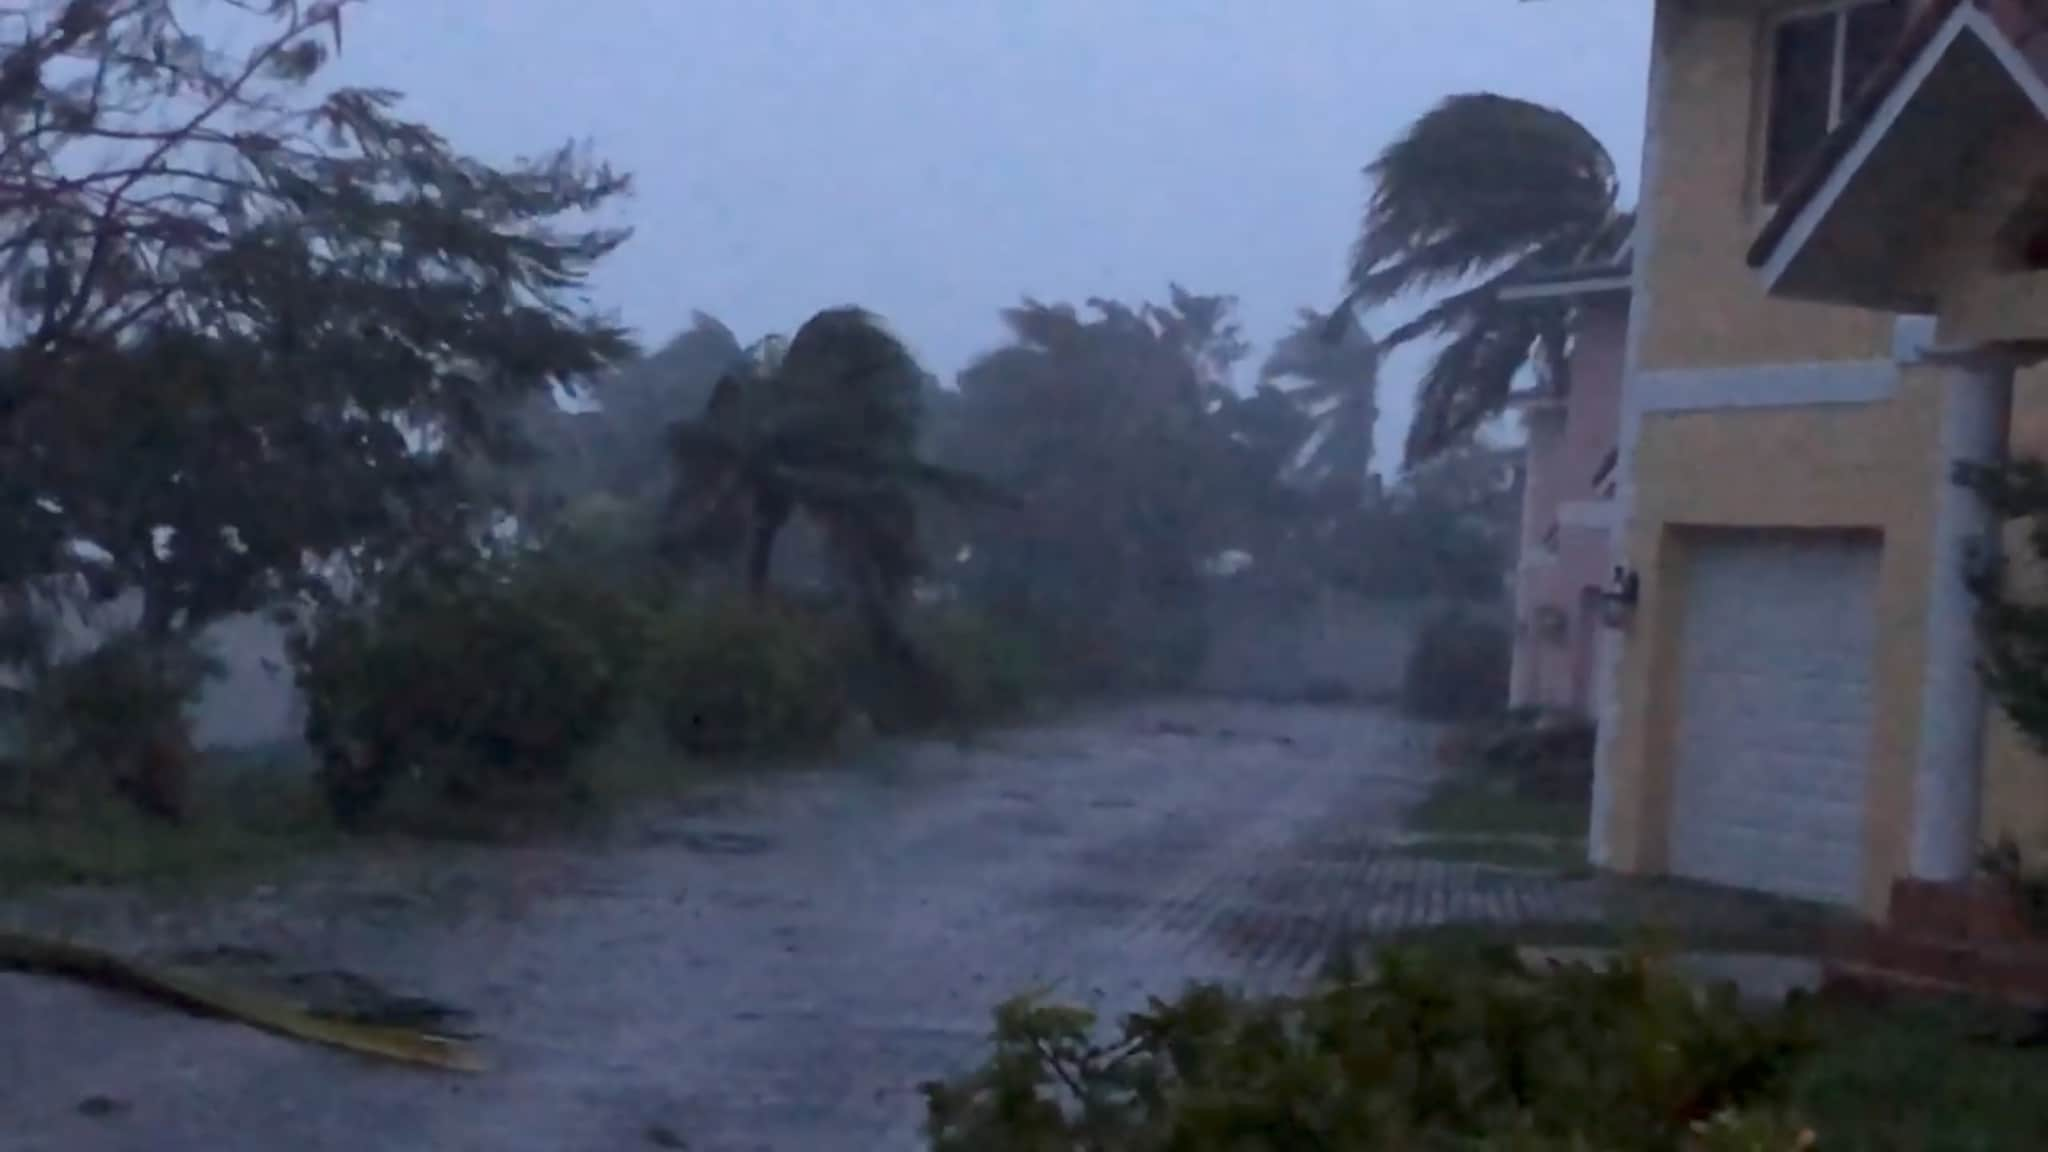 Strong winds batter Oceanhill Boulevard in Freeport, as Hurricane Dorian passes over Grand Bahama Island, Bahamas September 2, 2019 in this still image taken from a video by social media. Lou Carroll via REUTERS